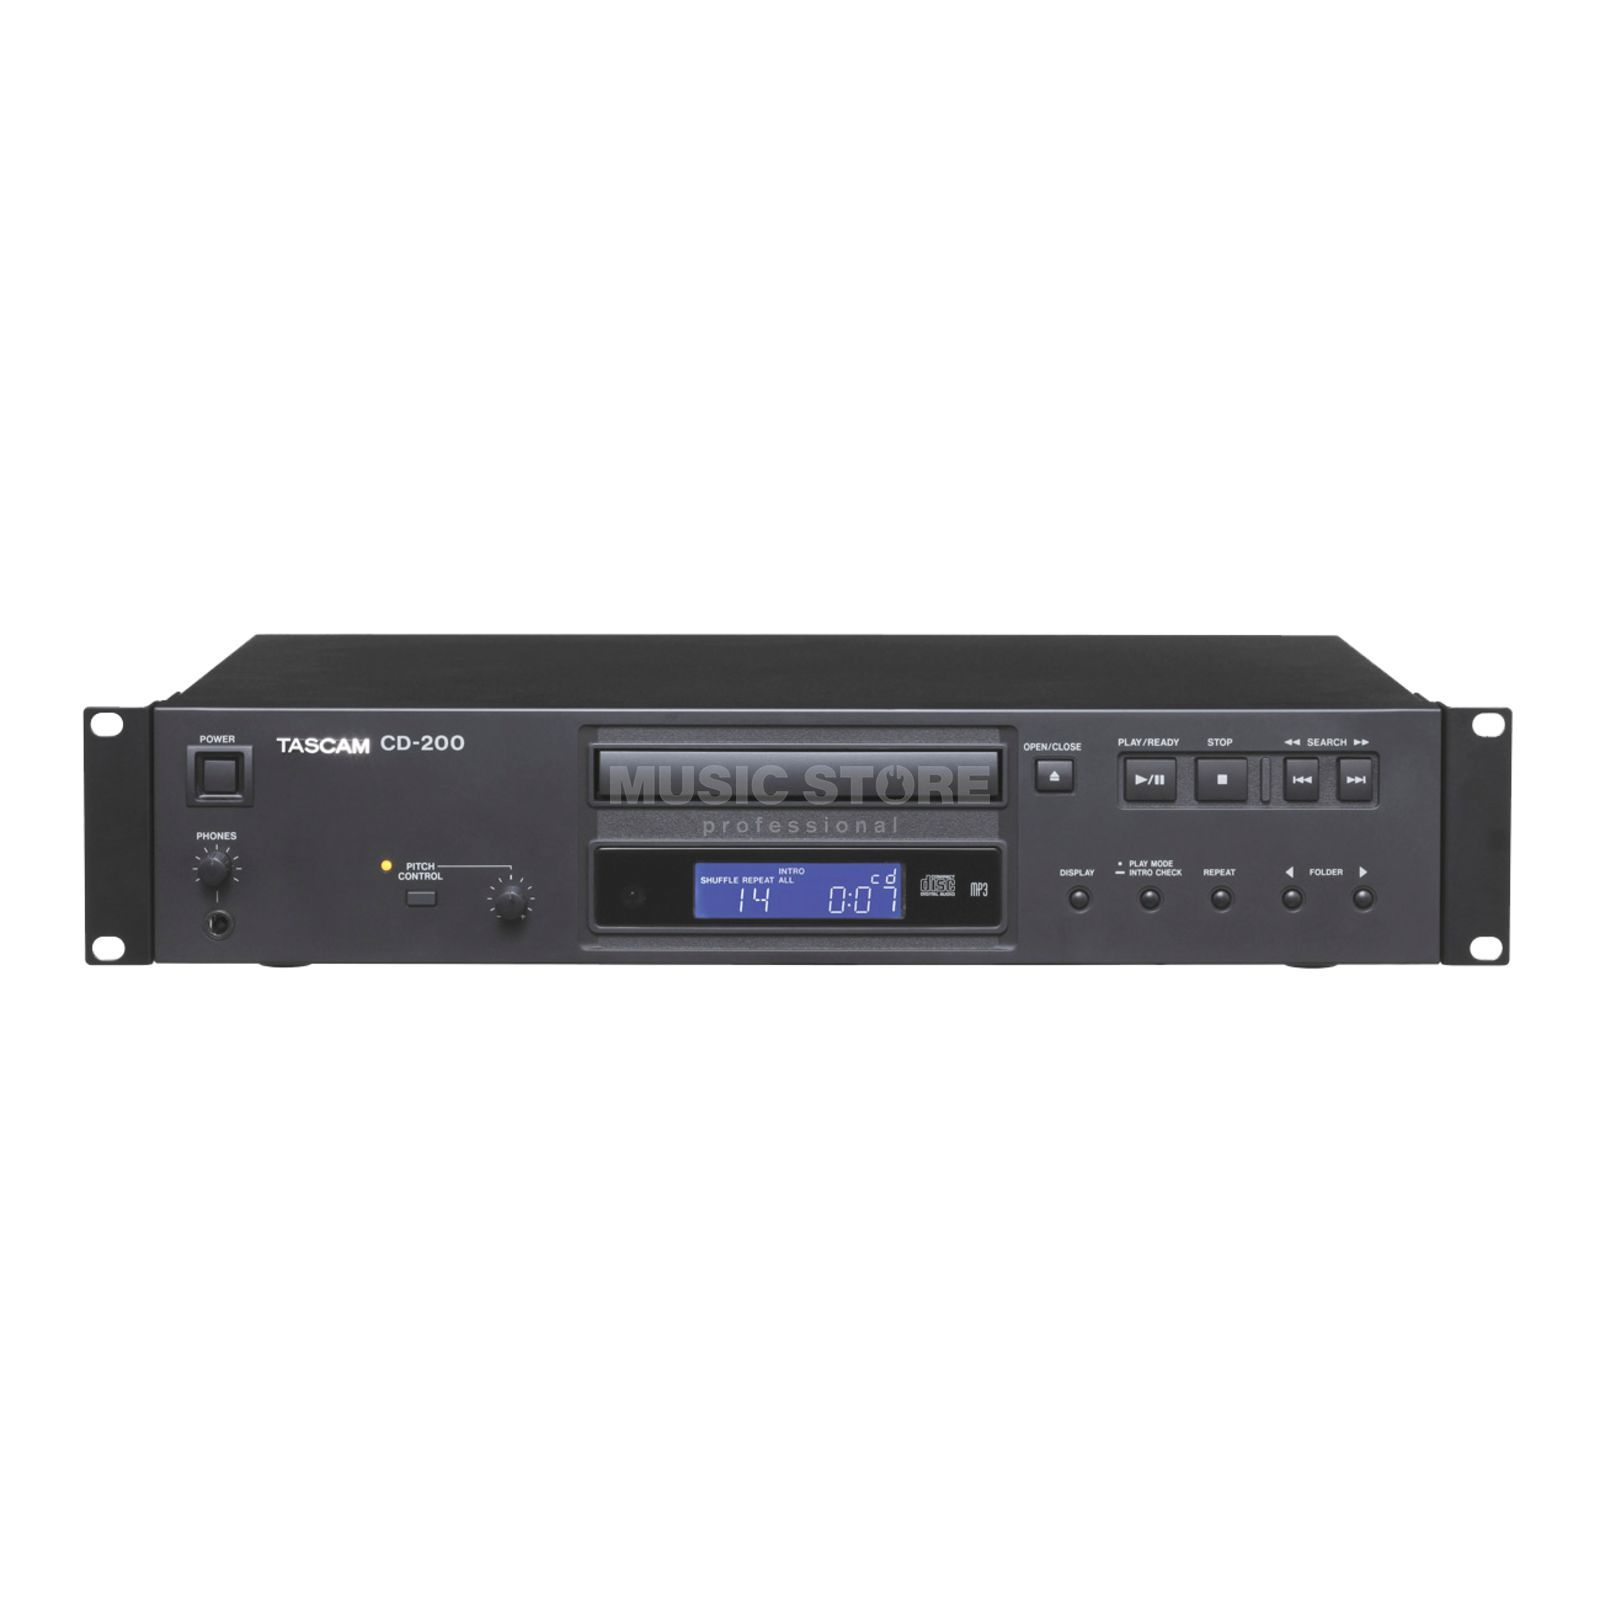 Tascam CD-200 CD Player, MP3/WAV Product Image